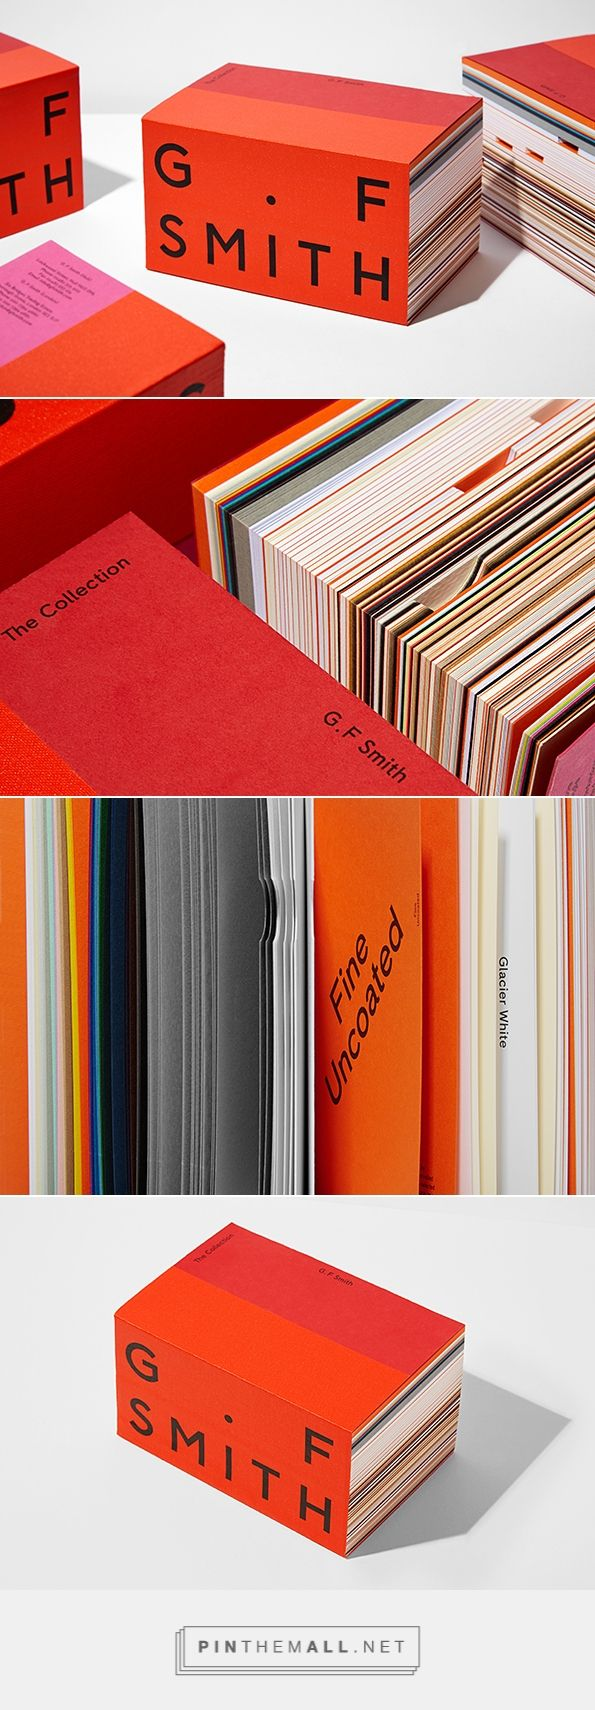 Made Thought celebrates every paper in the G . F Smith collection